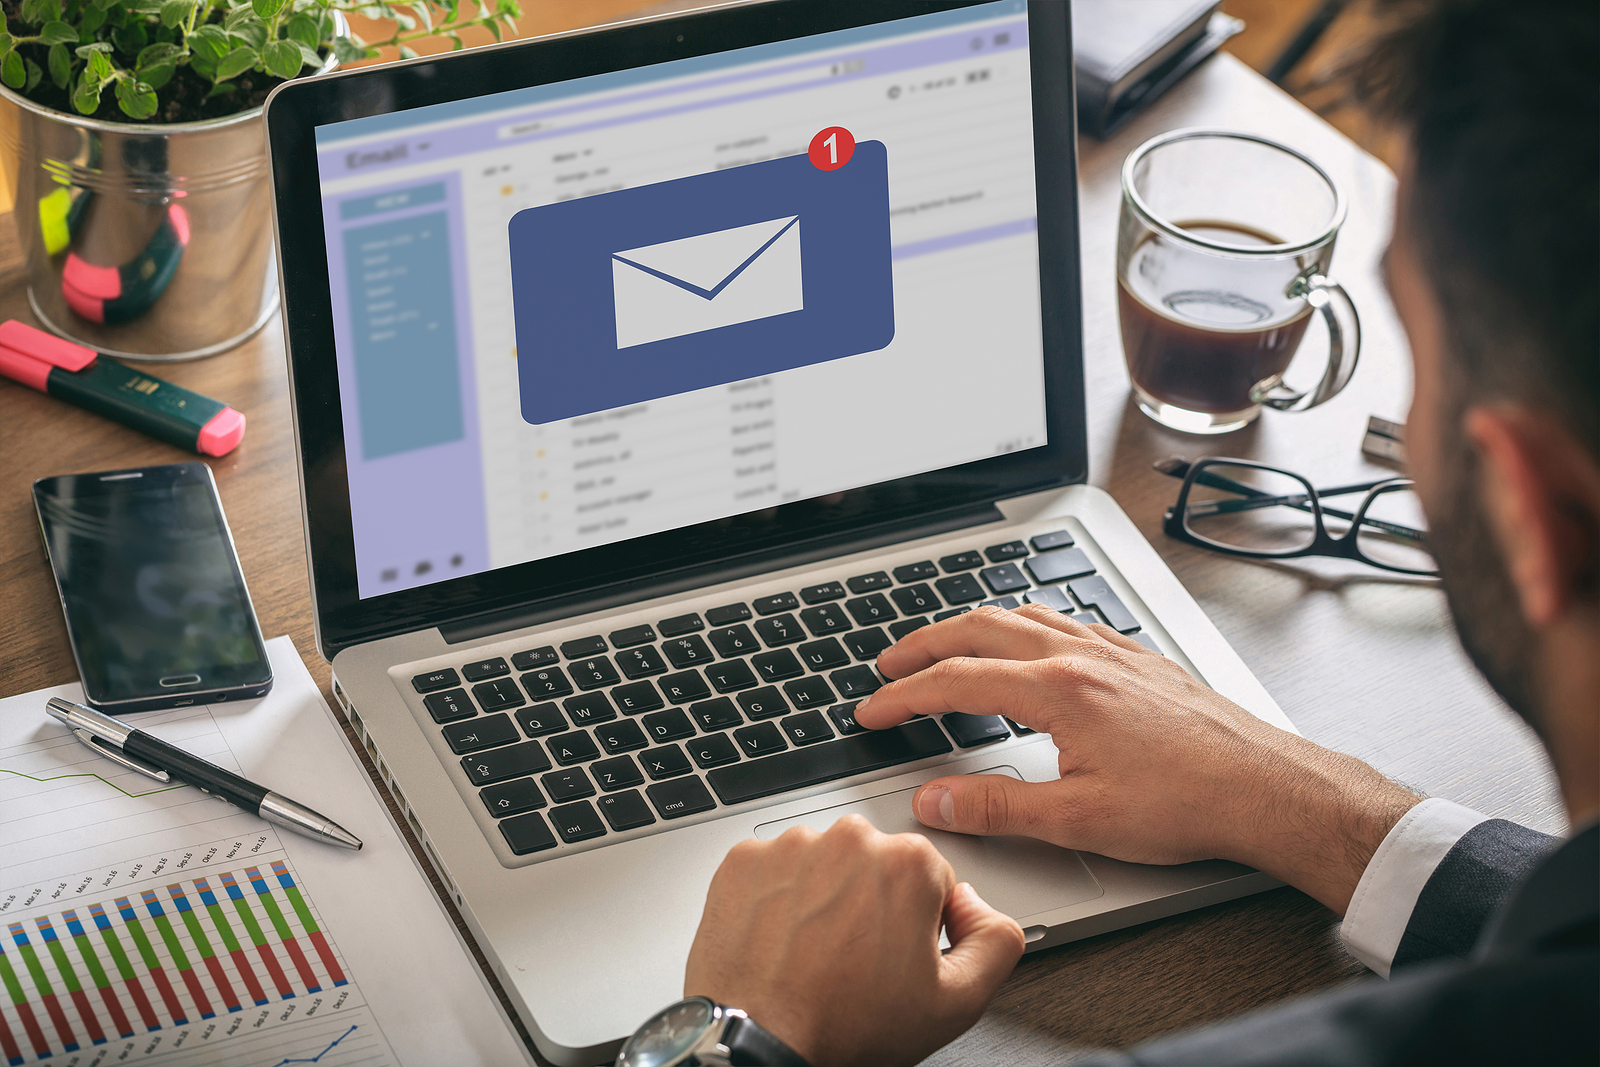 6 Things Businesses Should Do To Keep Their Email List Clean